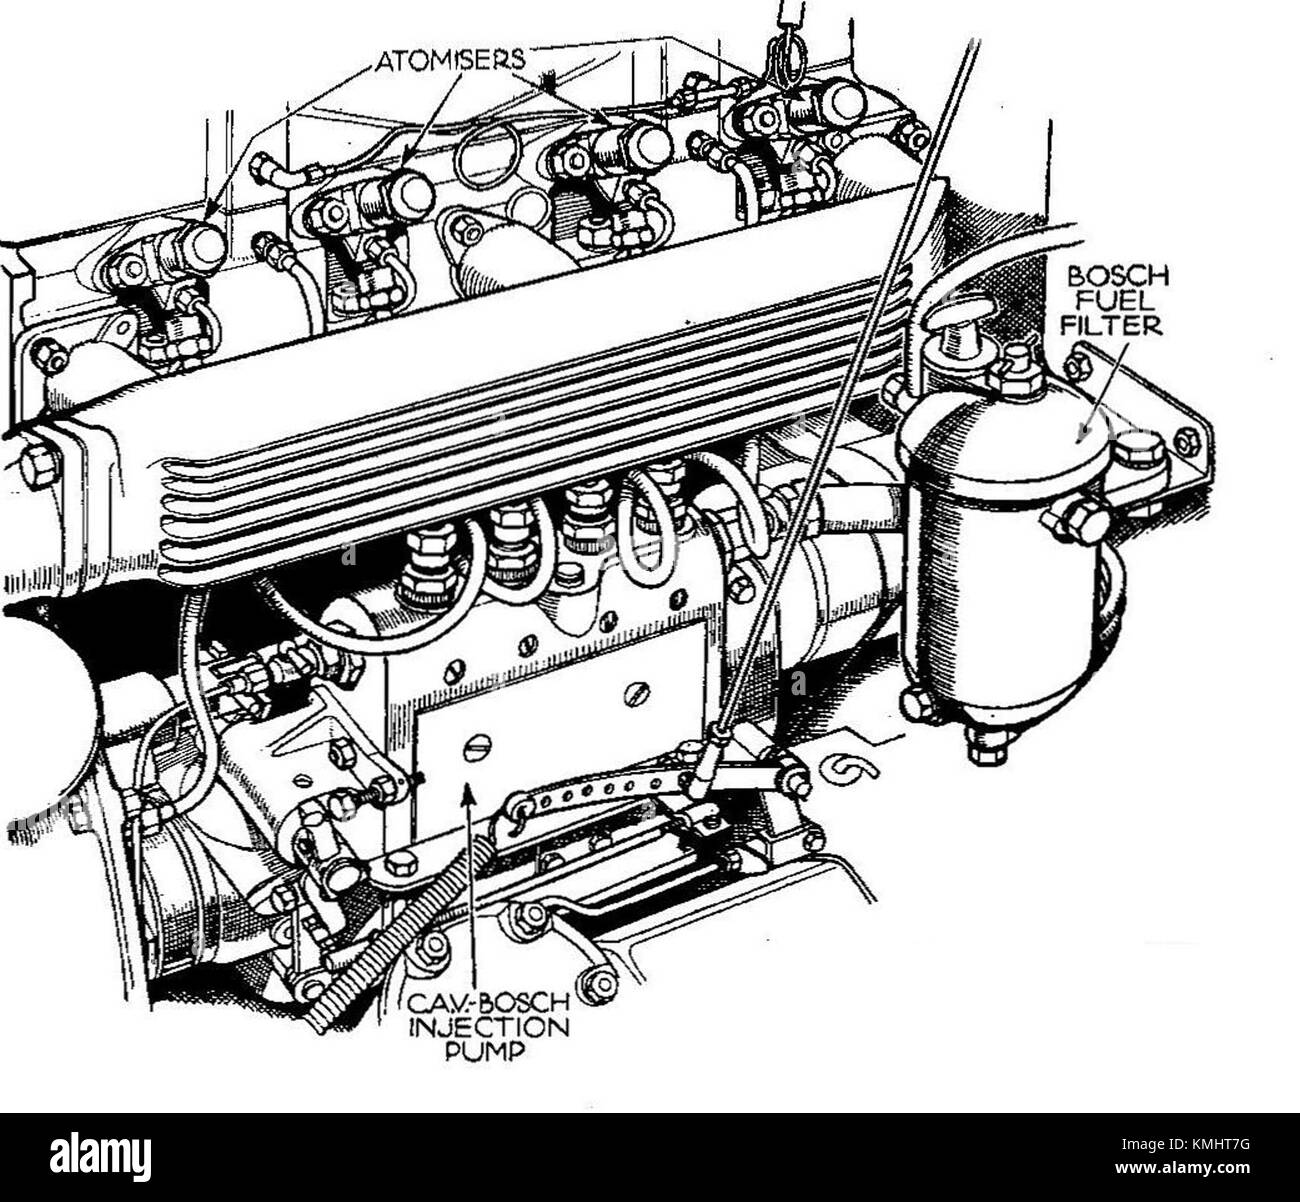 Perkins diesel car engine (Autocar Handbook, 13th ed, 1935) - Stock Image